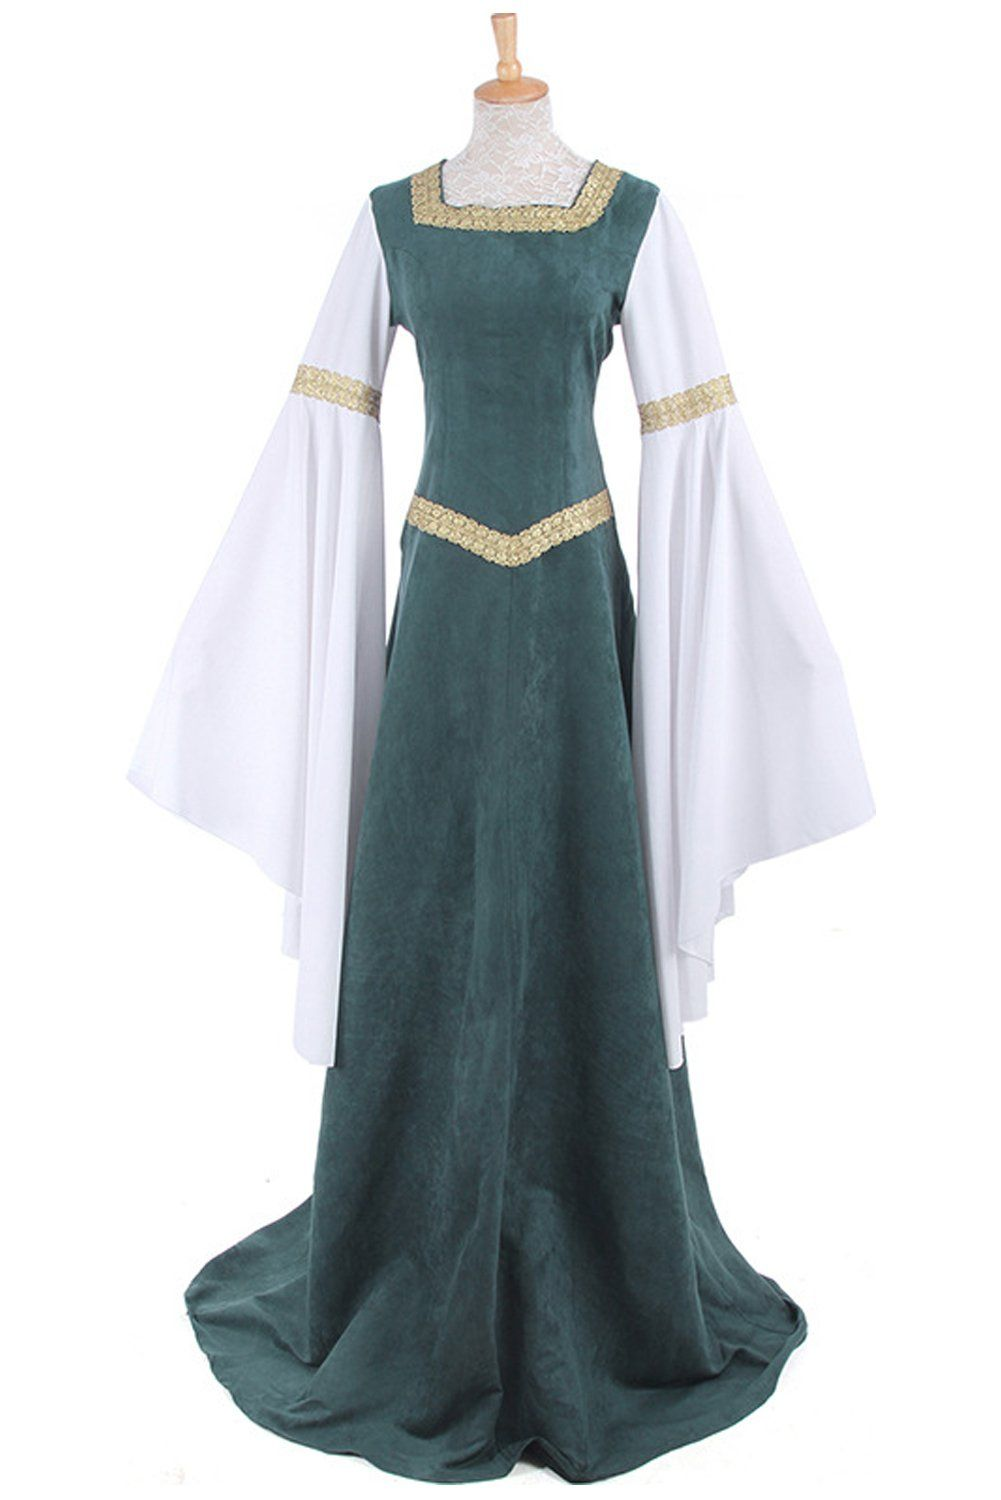 Women Medieval Retro Long Dress Victorian European Court Costumes Halloween Party Fancy Dress You Could Get Addi Queen Dress Cosplay Dress Party Gown Dress [ 1500 x 1001 Pixel ]